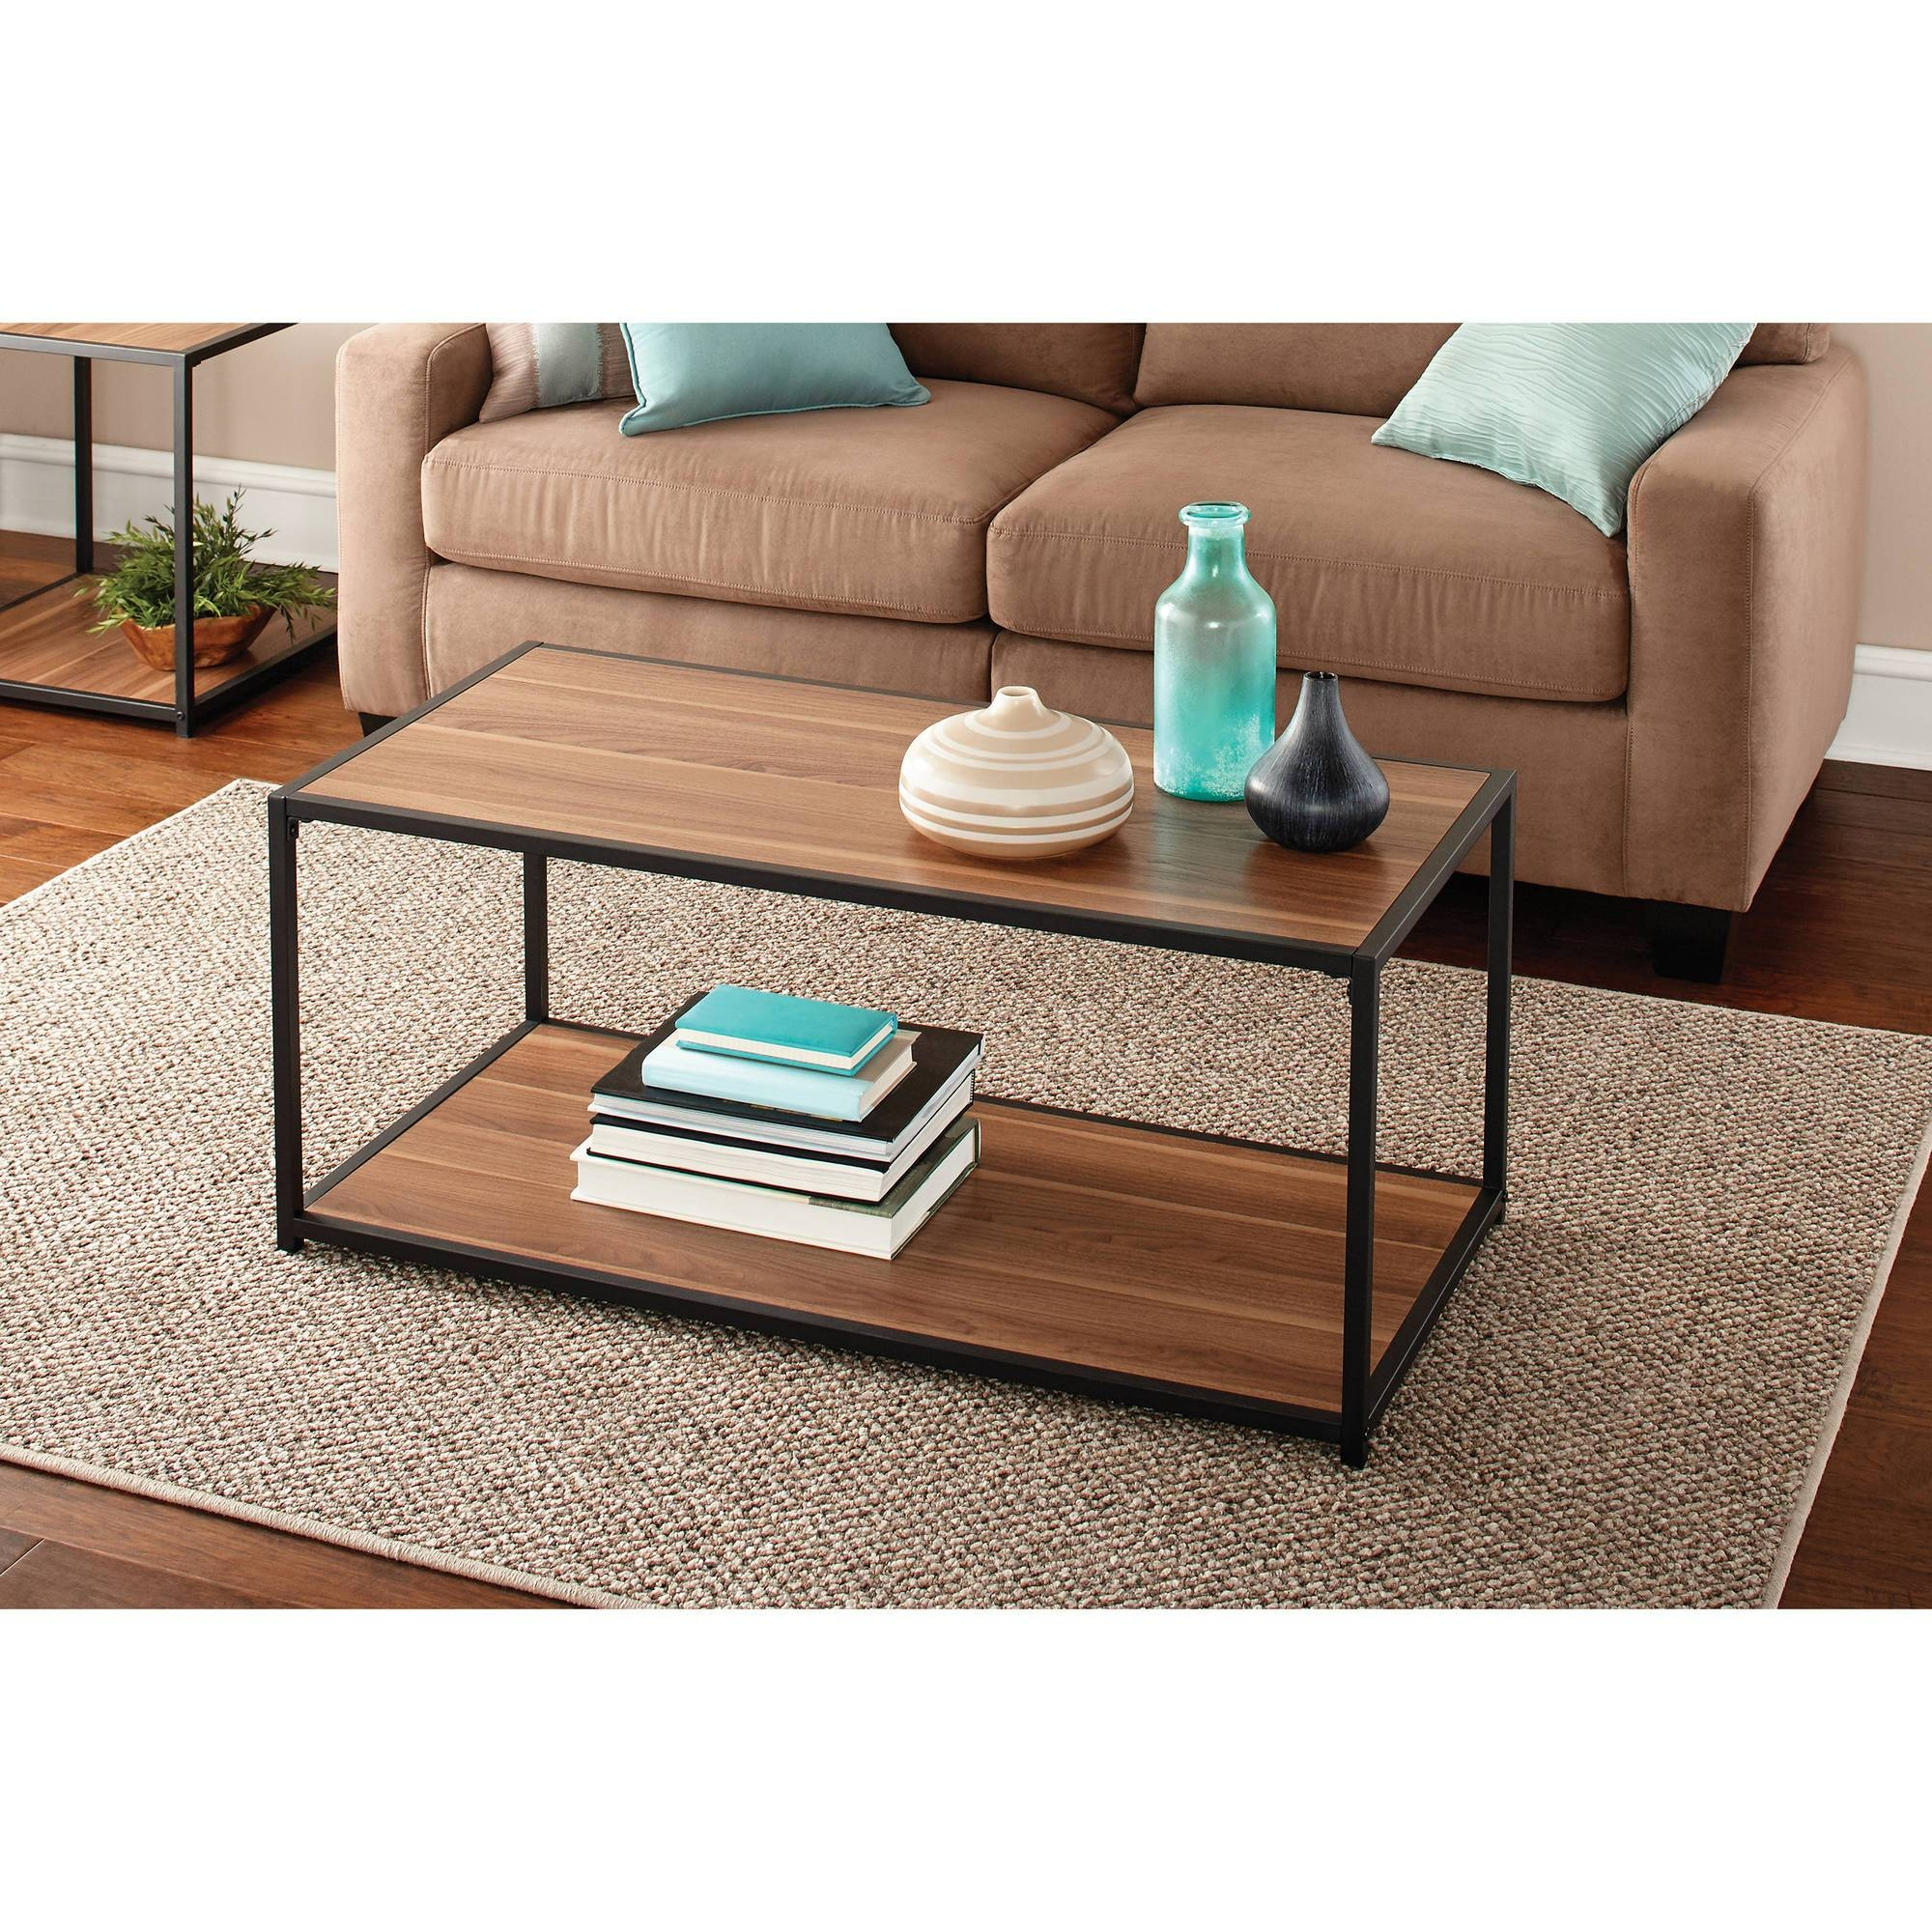 Big Lots End Tables Full Size Table With Storage Big Lots End